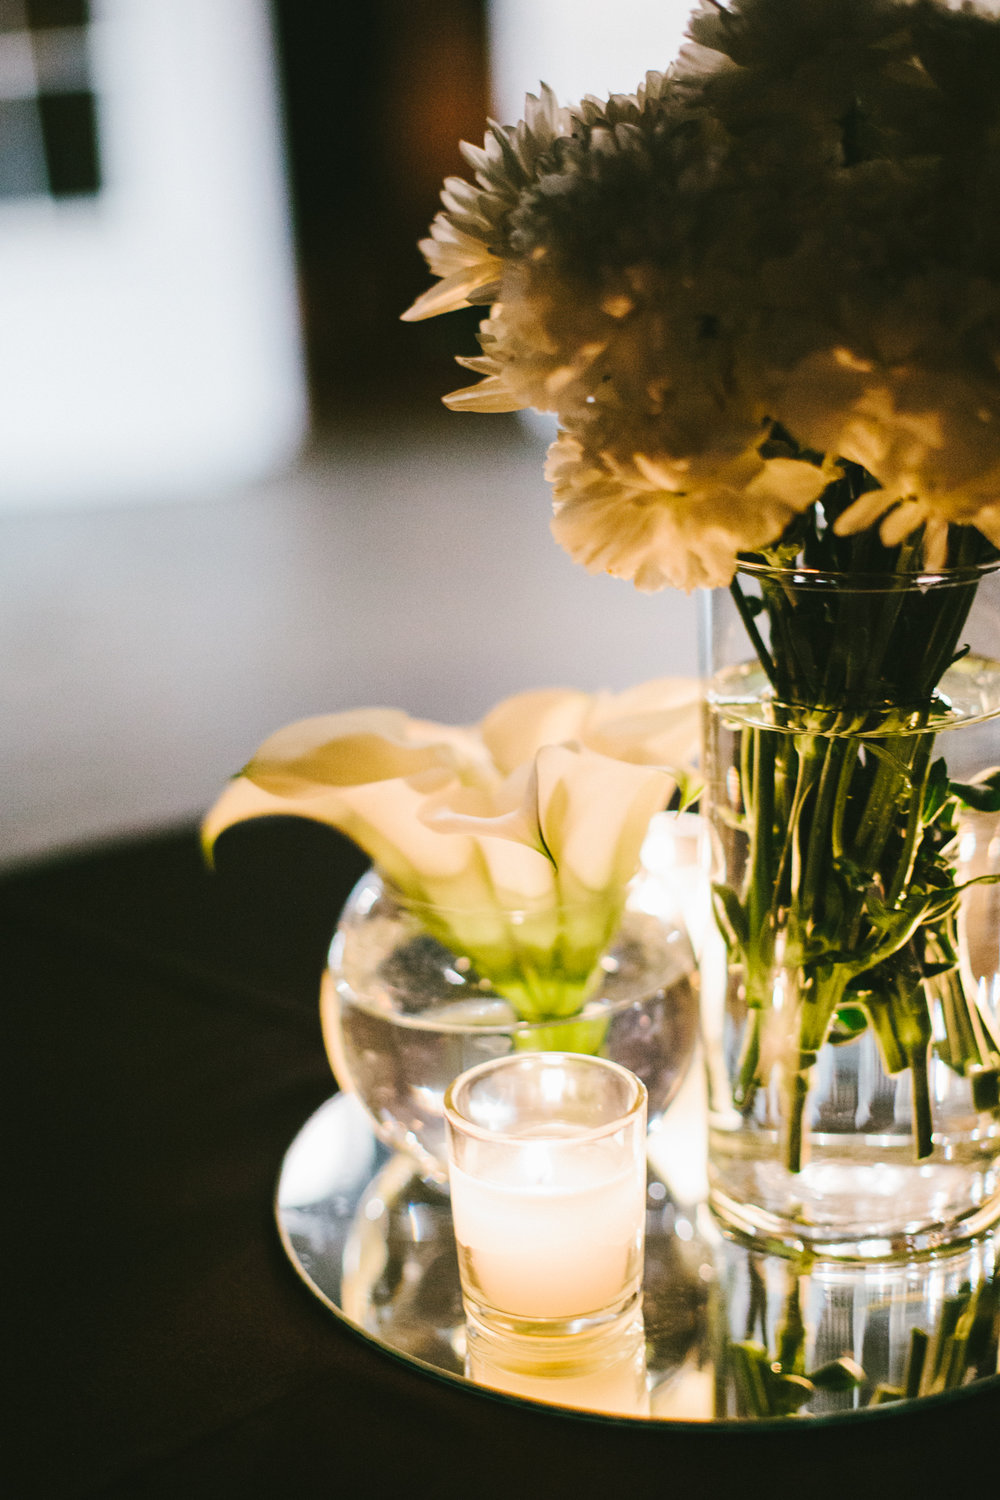 whiteflowerdetail.jpg